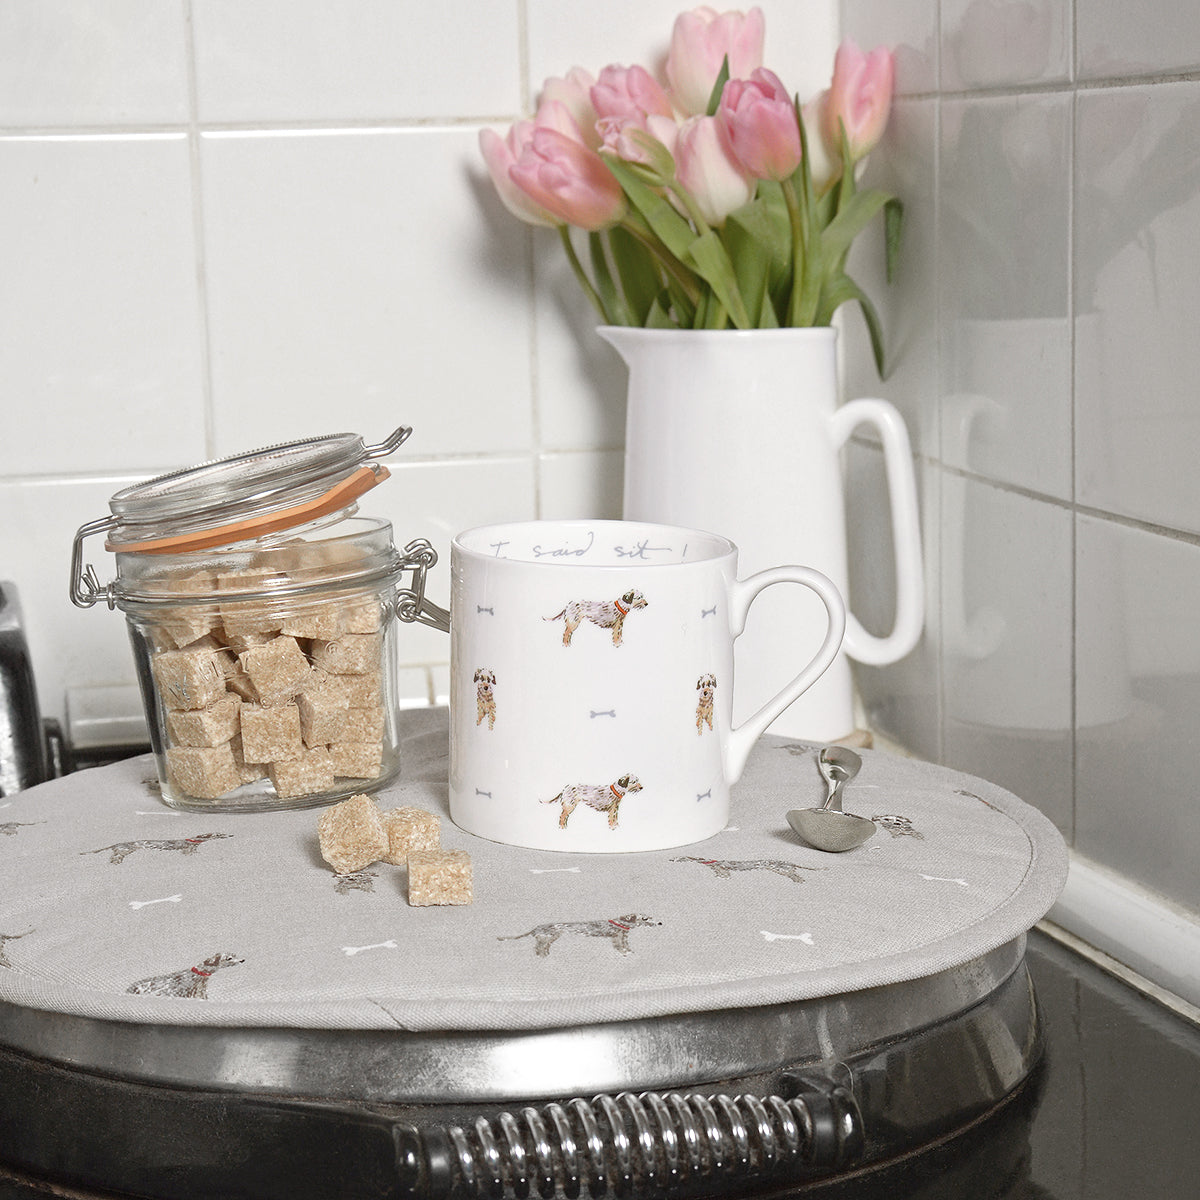 I Said Sit Terrier Mug by Sophie Allport